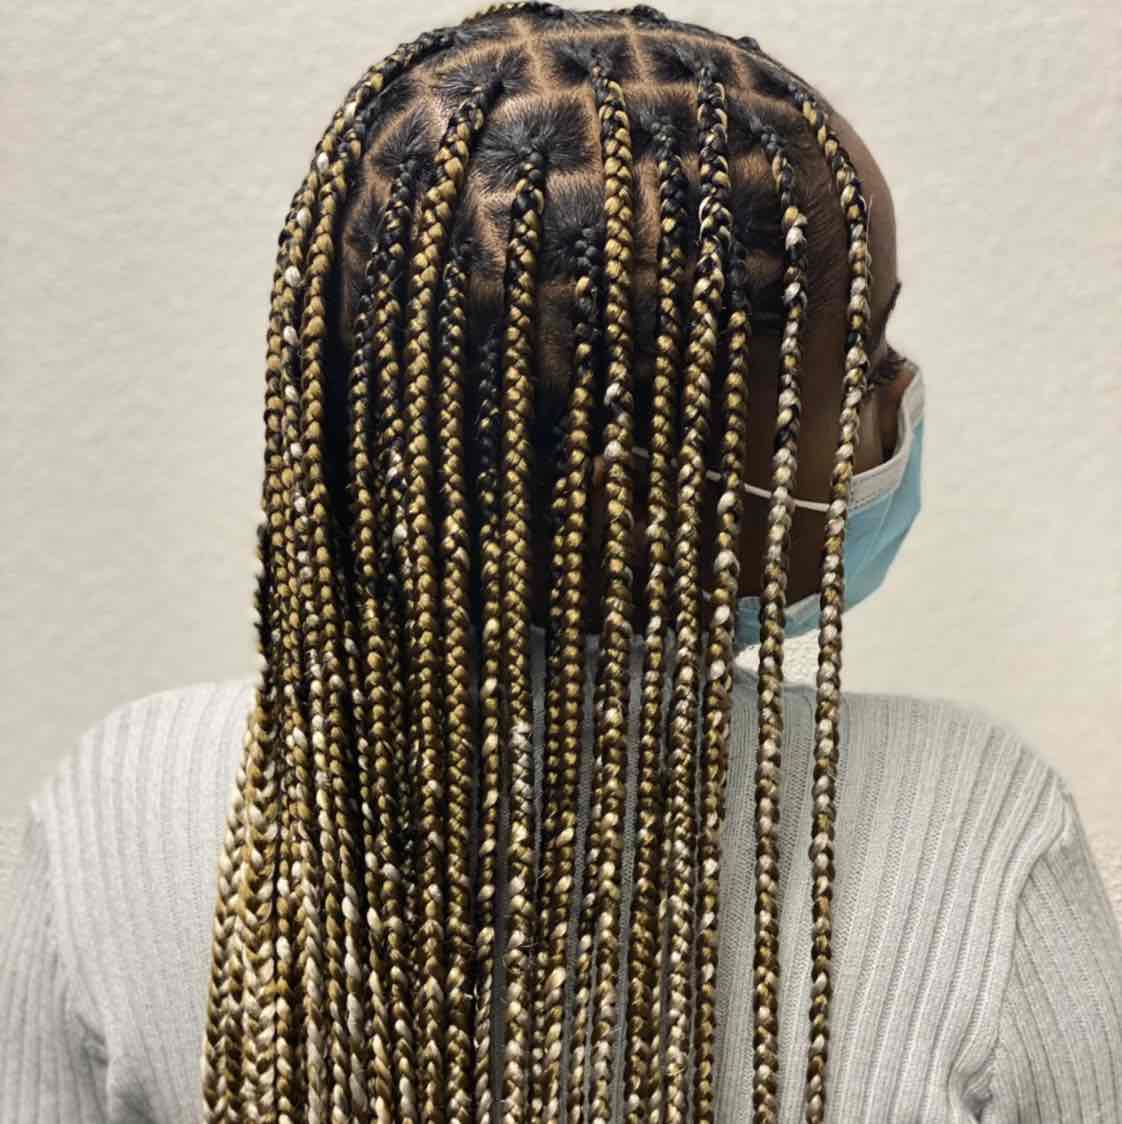 salon de coiffure afro tresse tresses box braids crochet braids vanilles tissages paris 75 77 78 91 92 93 94 95 TEZXVDBF